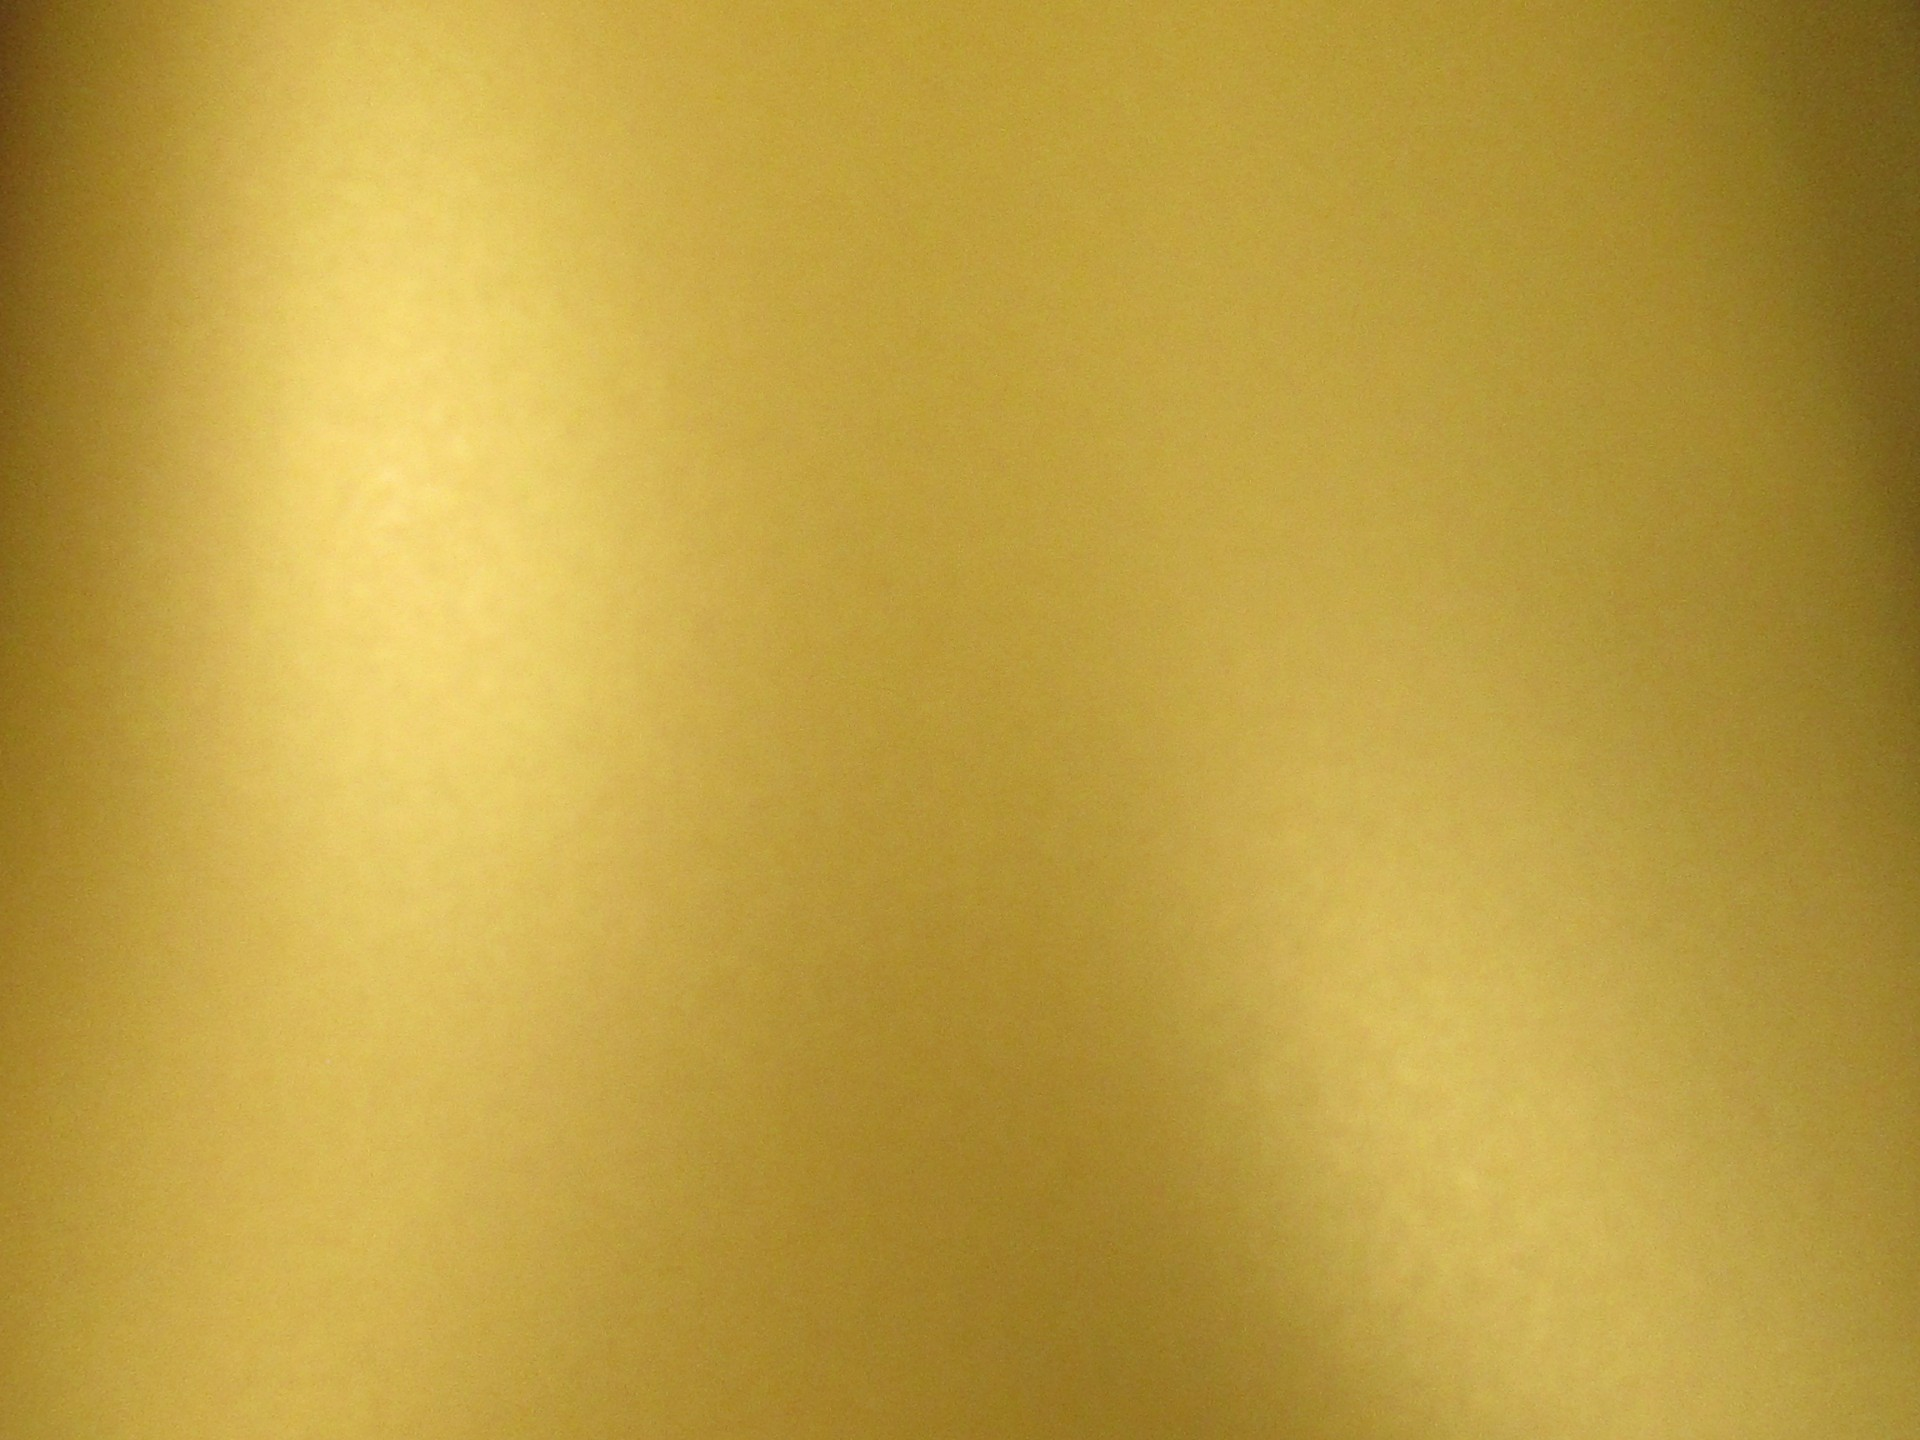 Shiny Gold background ·① Download free awesome backgrounds ...